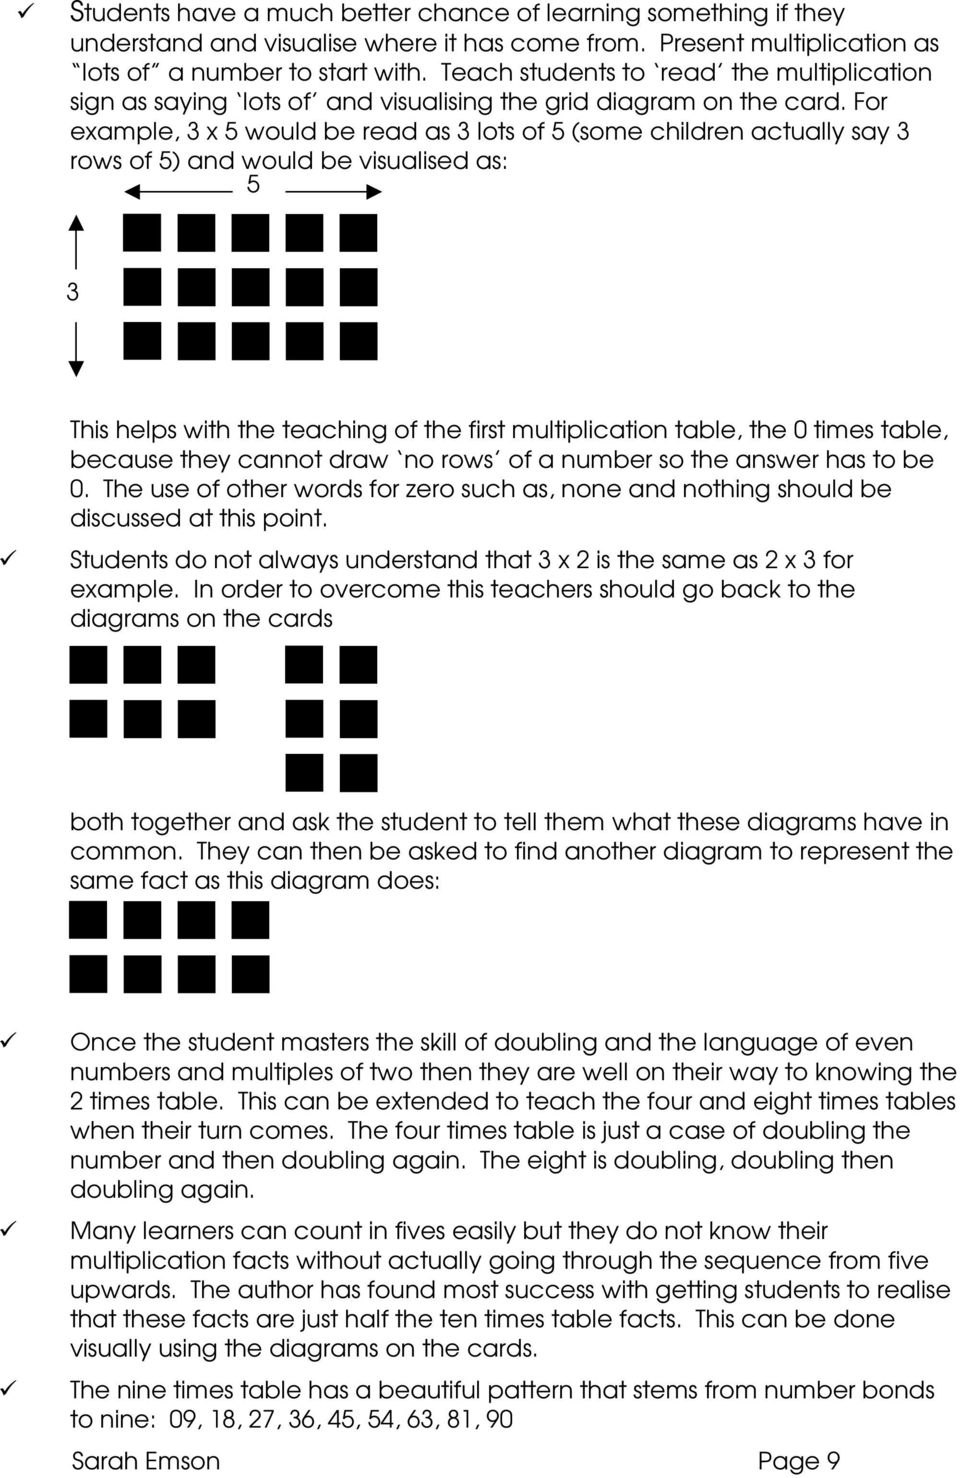 For example, 3 x 5 would be read as 3 lots of 5 (some children actually say 3 rows of 5) and would be visualised as: 5 3 This helps with the teaching of the first multiplication table, the 0 times